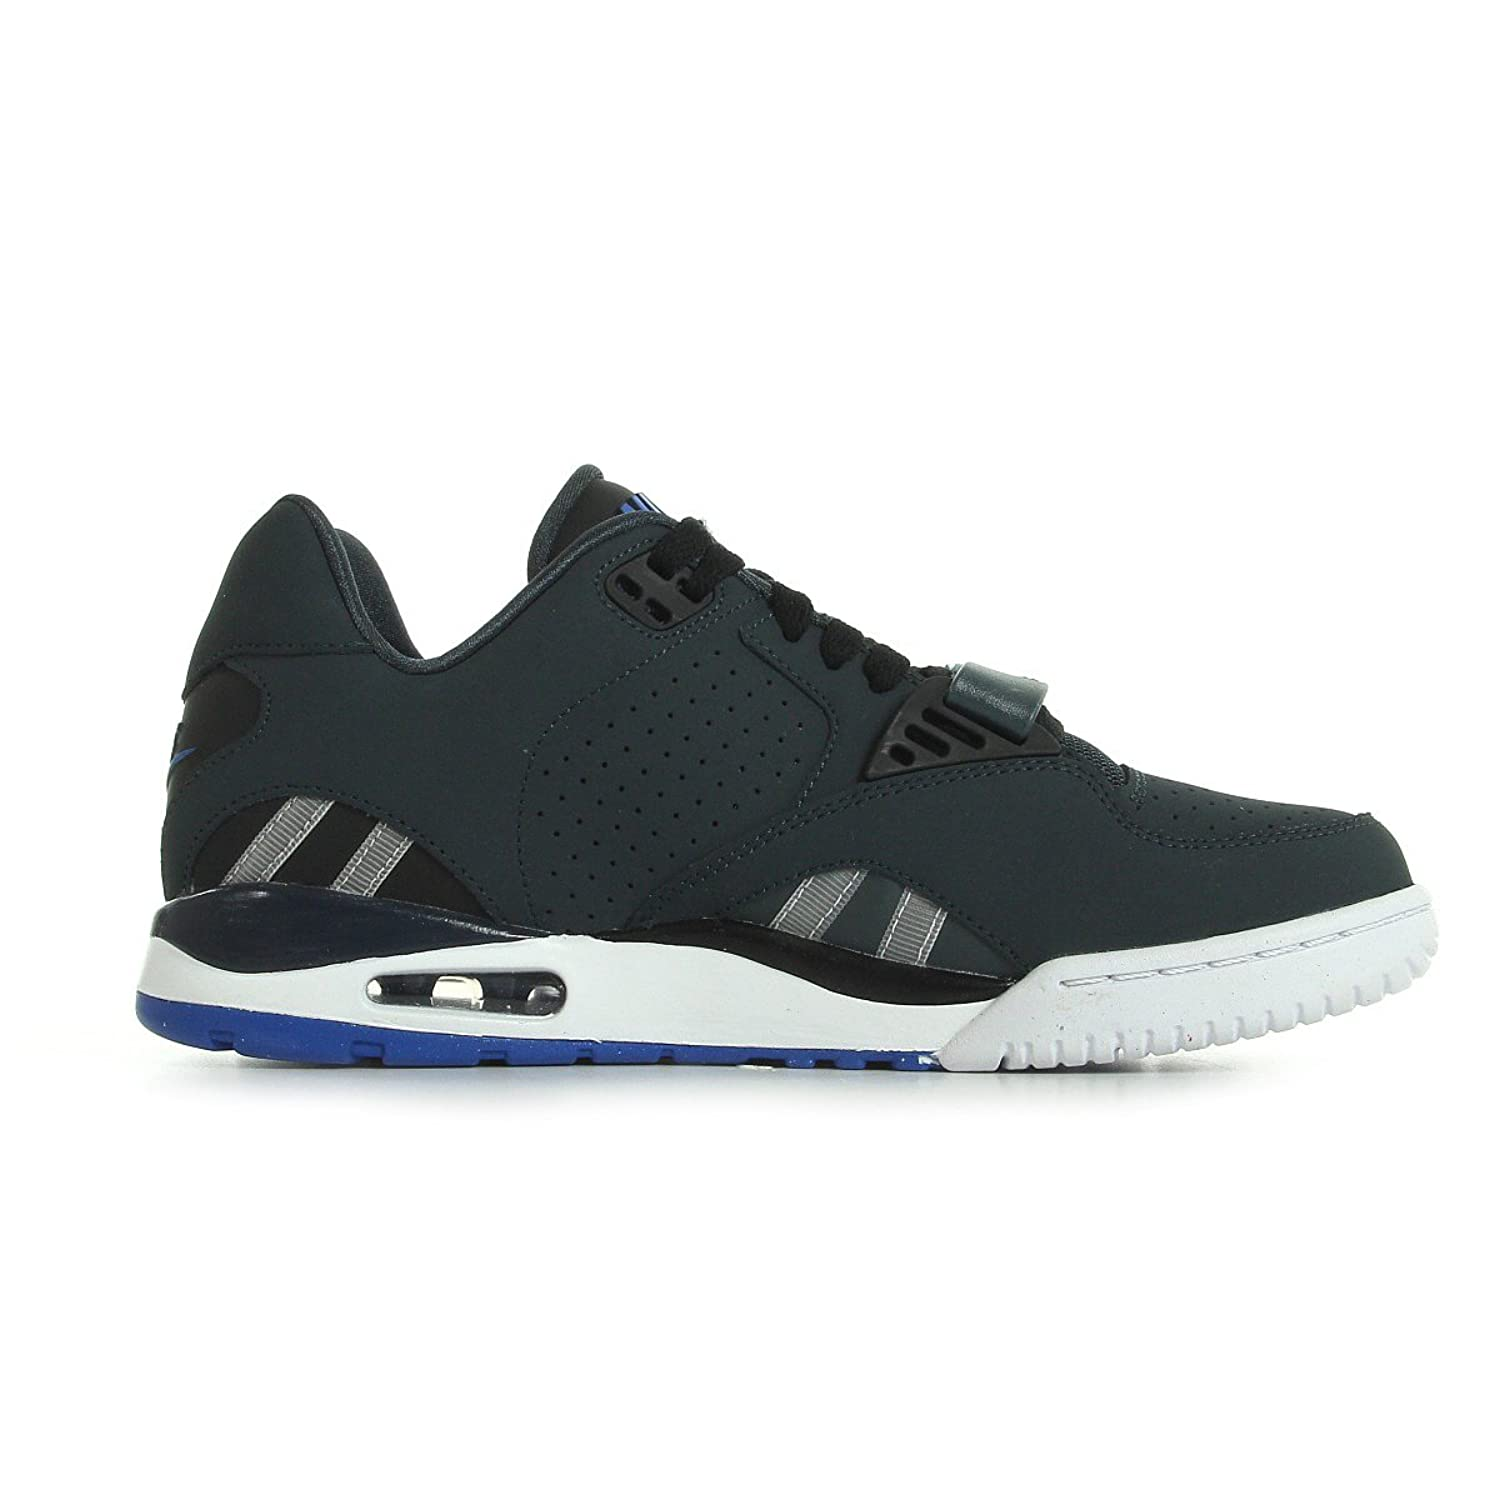 nike air trainer SC II low mens trainers 705428 sneakers shoes:  Amazon.co.uk: Shoes & Bags